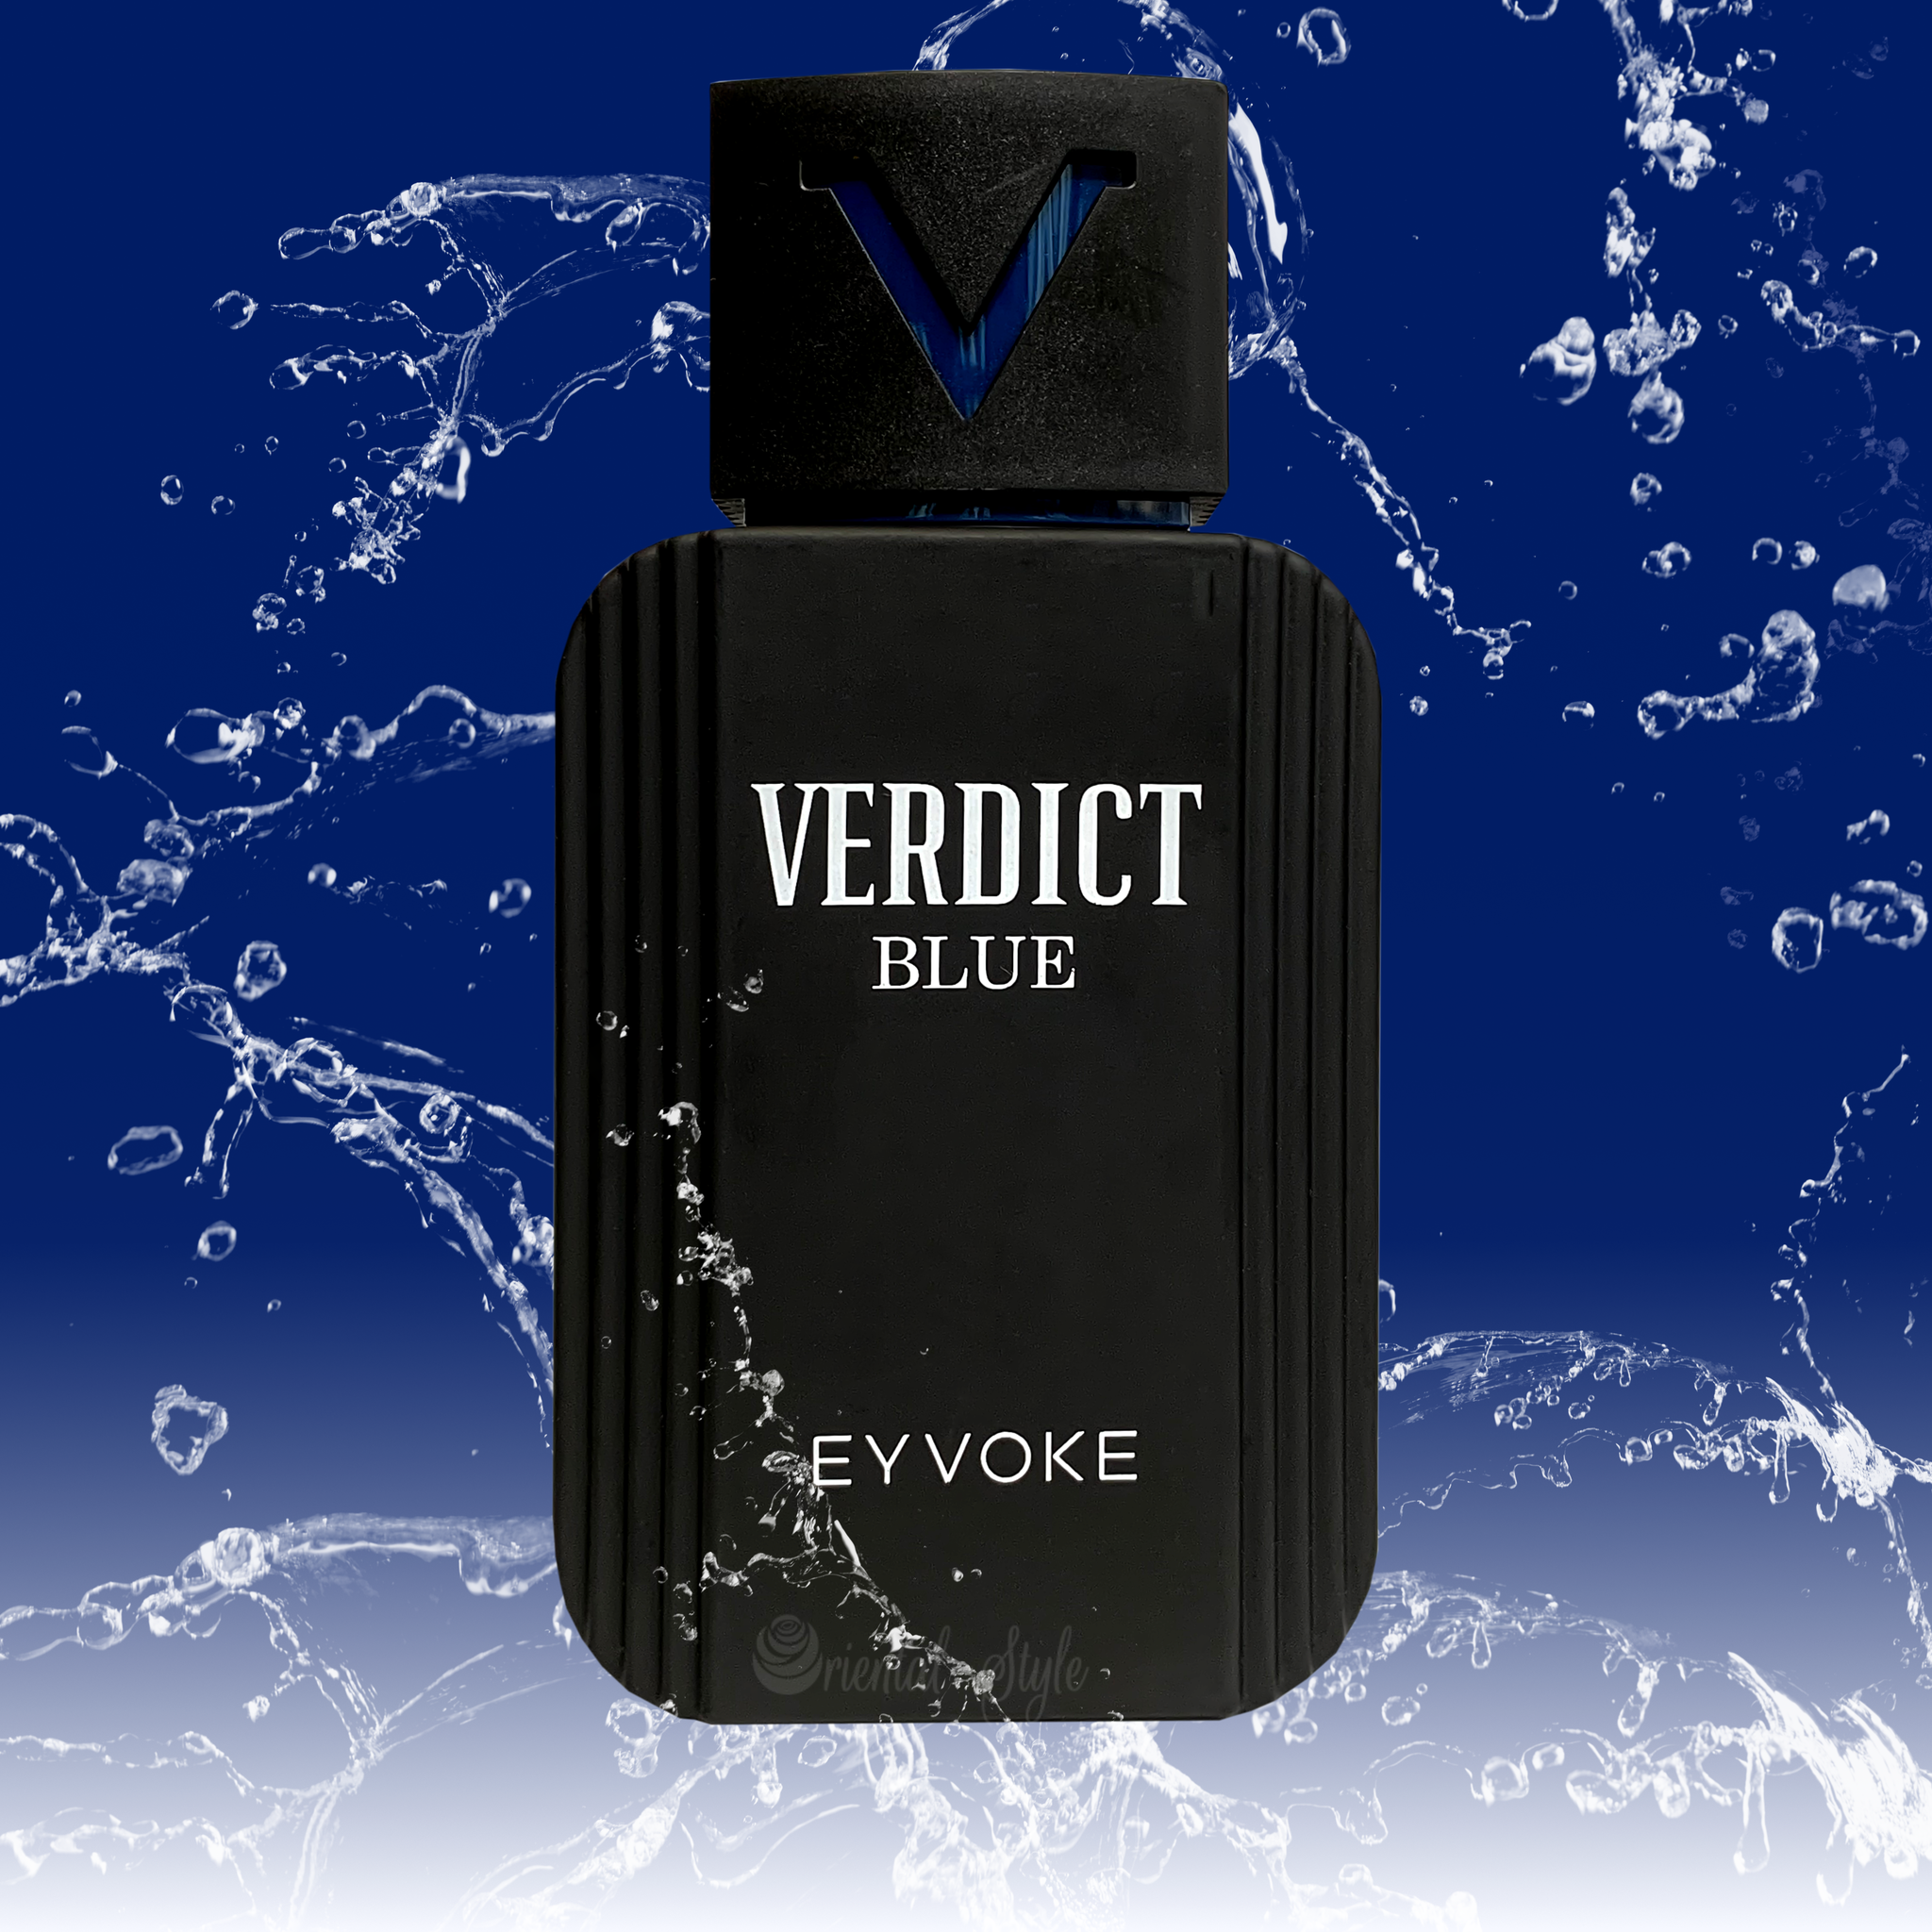 SWISS ARABIAN VERDICT BLUE EYVOKE EAU DE PARFUM 100ML